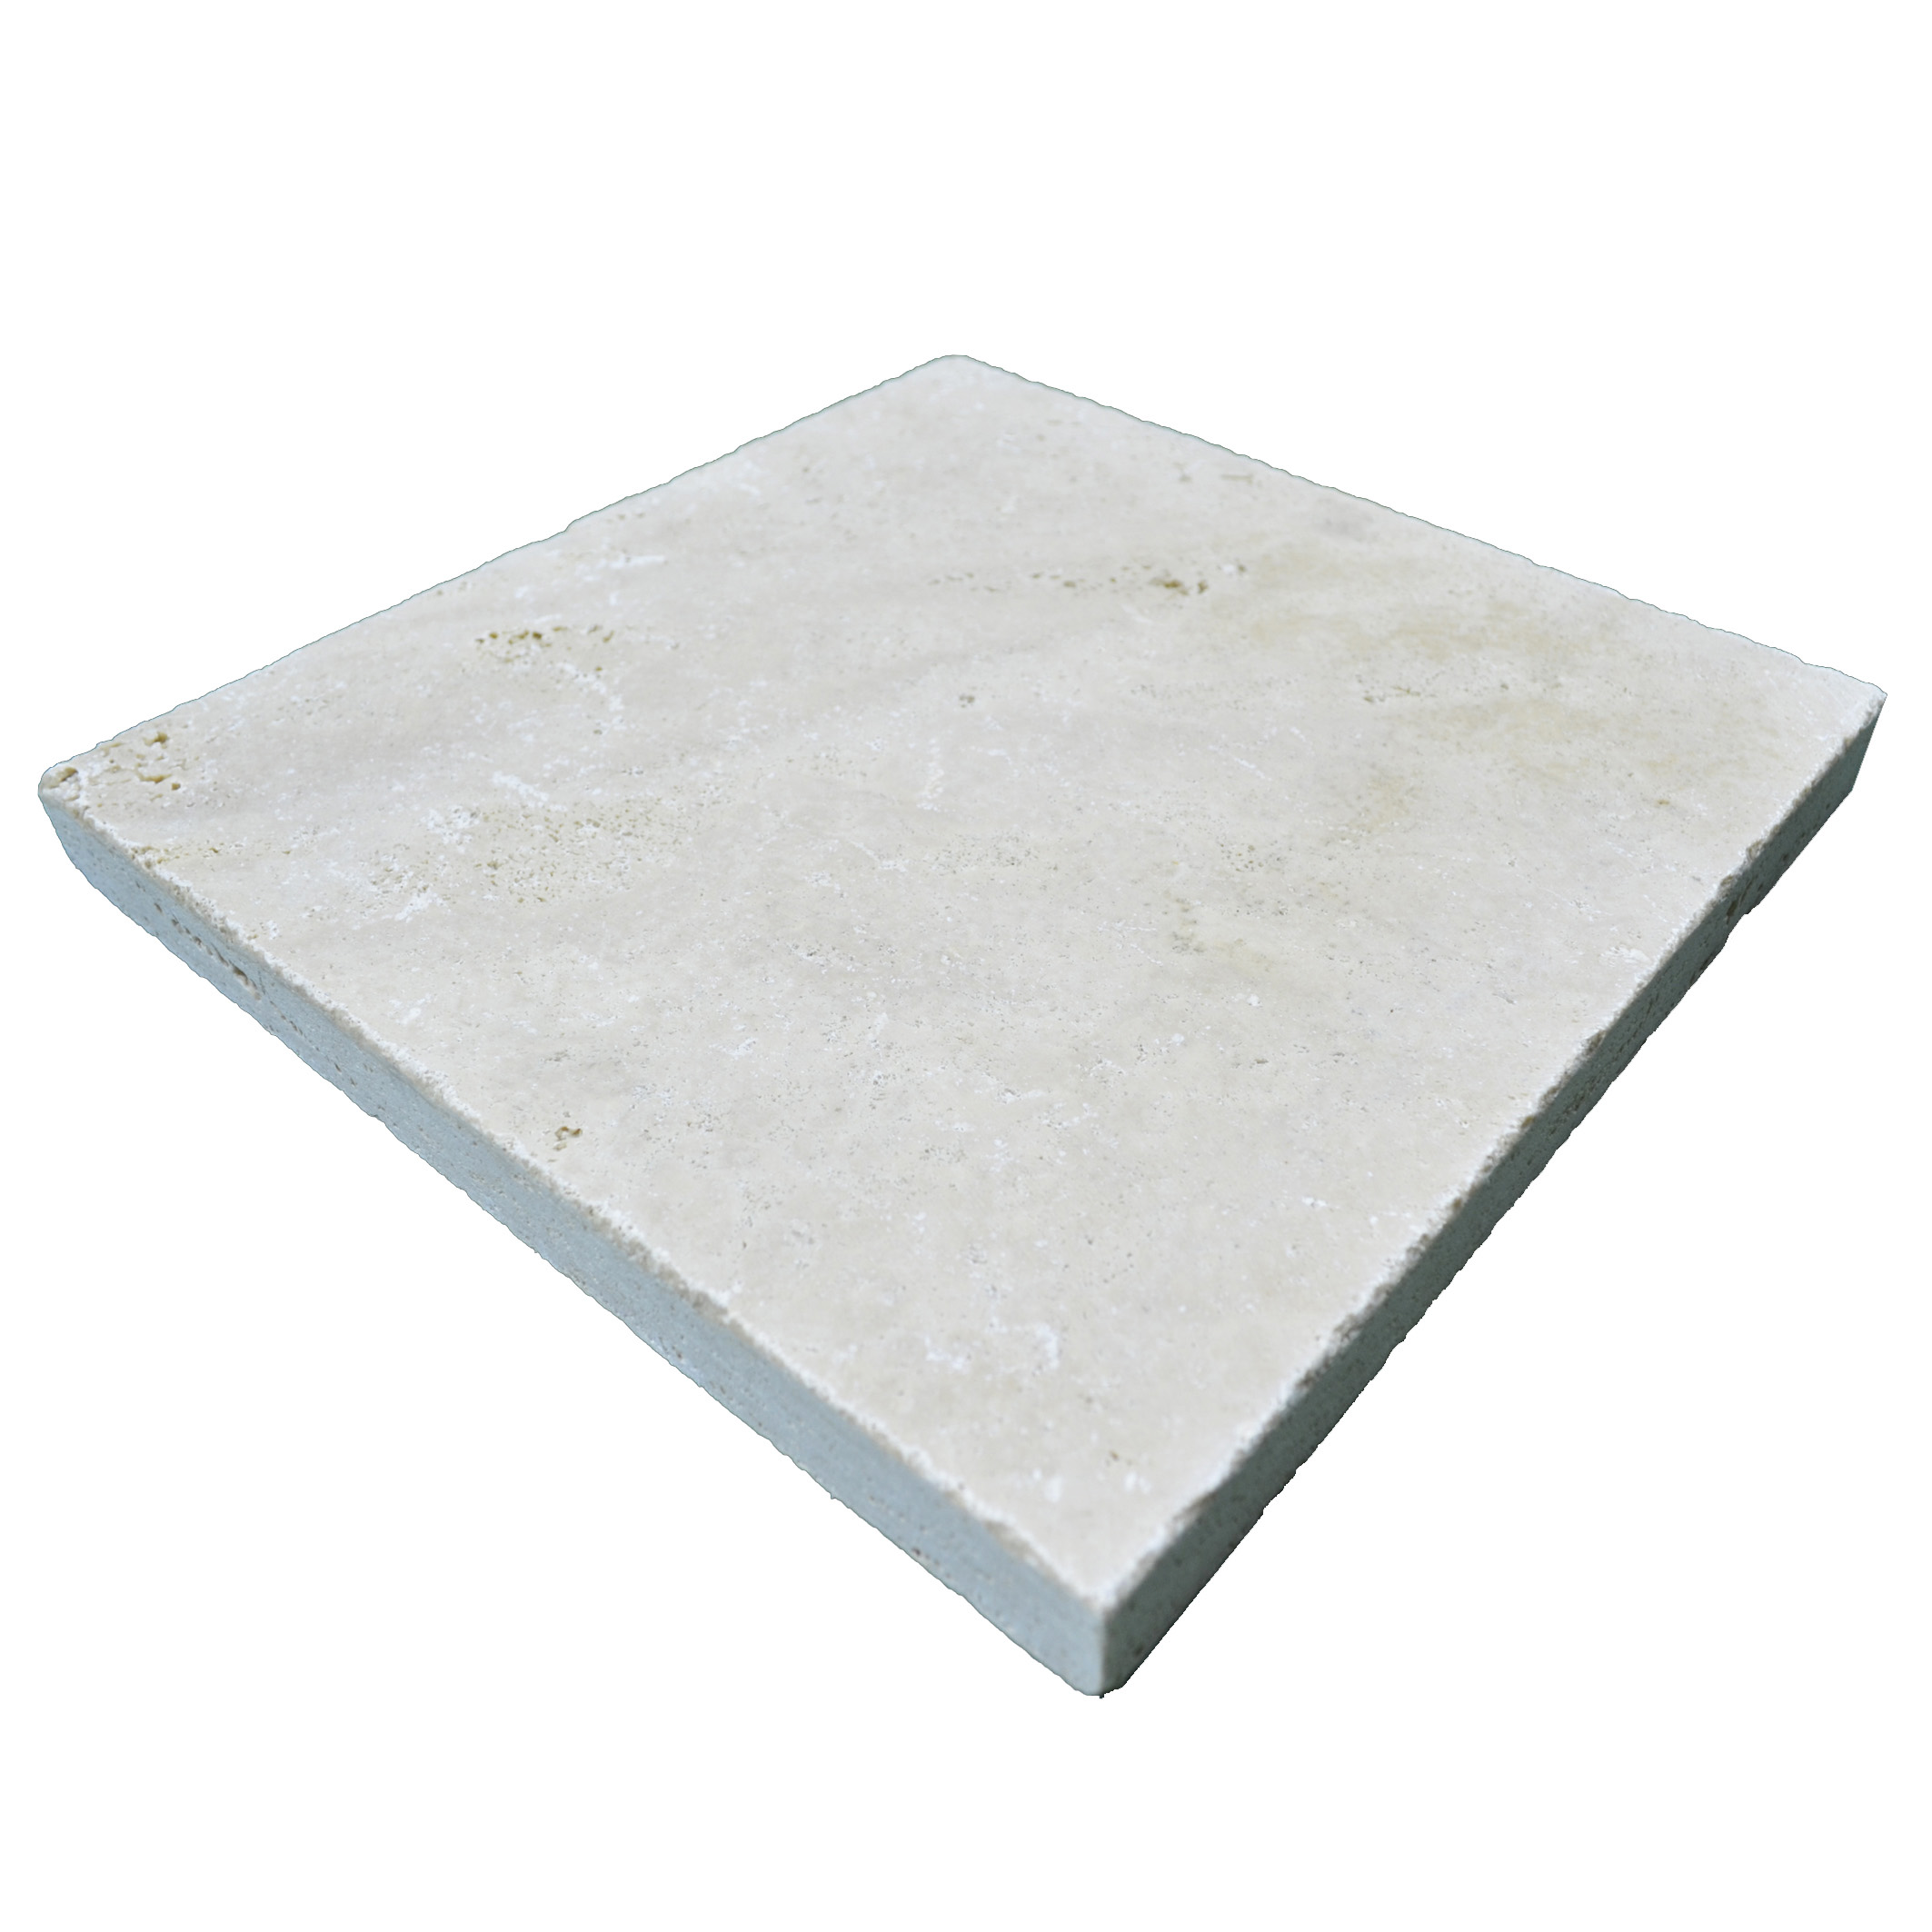 Ivory Tumbled Travertine Pavers 16×16-pavers sale-Atlantic Stone Source